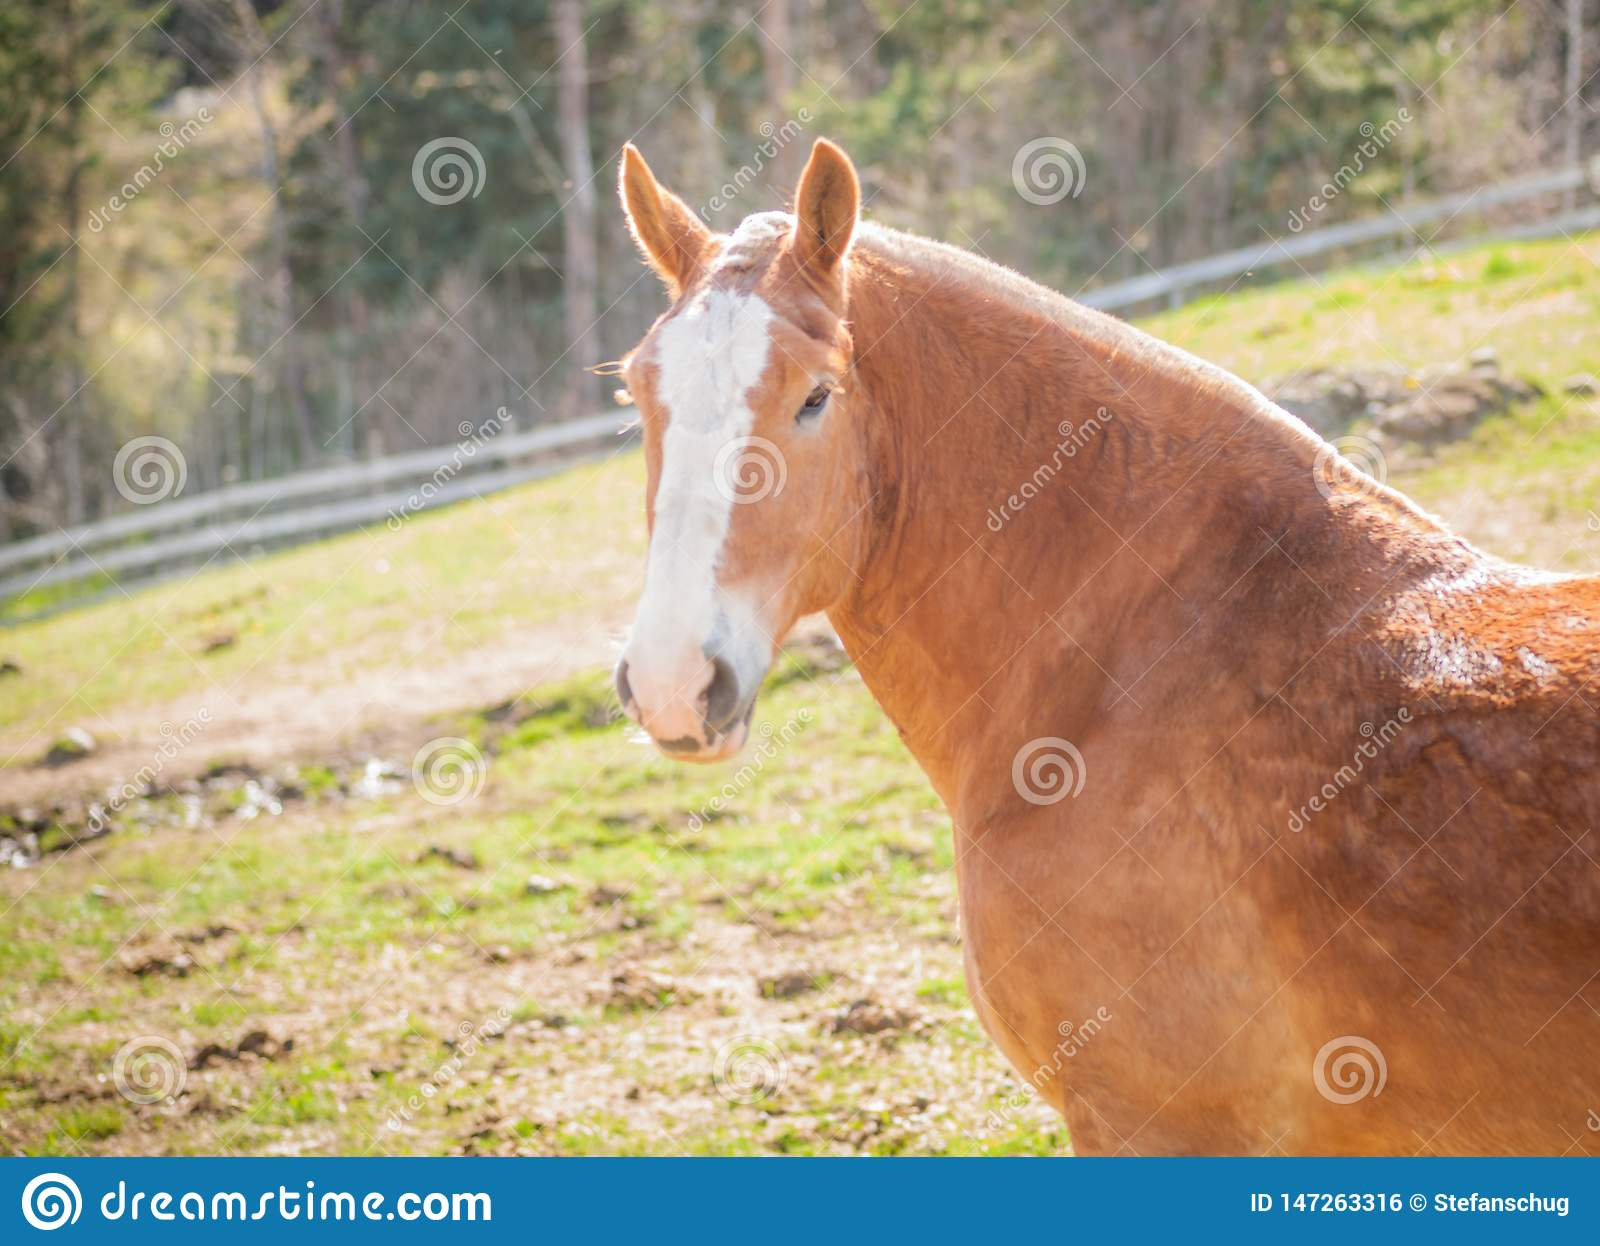 Draft Horse Portrait Of Head And Neck Stock Photo Image Of Sideview Riding 147263316